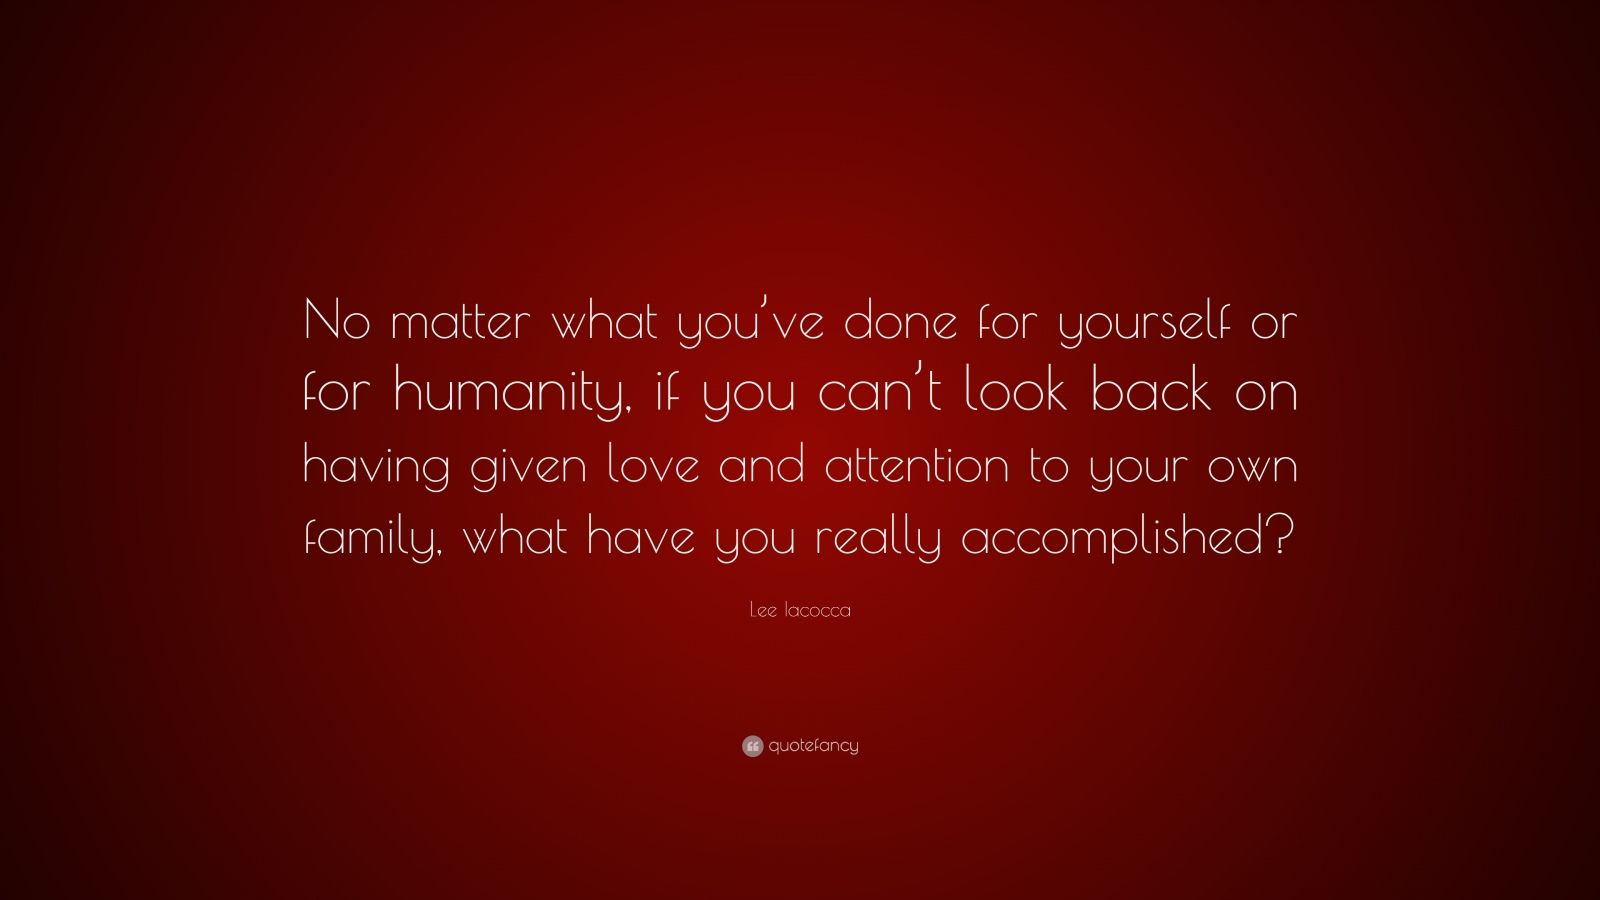 "Lee Iacocca Quote: ""No matter what you've done for yourself or for humanity, if you can't look back on having given love and attention to your own family, what have you really accomplished?"""